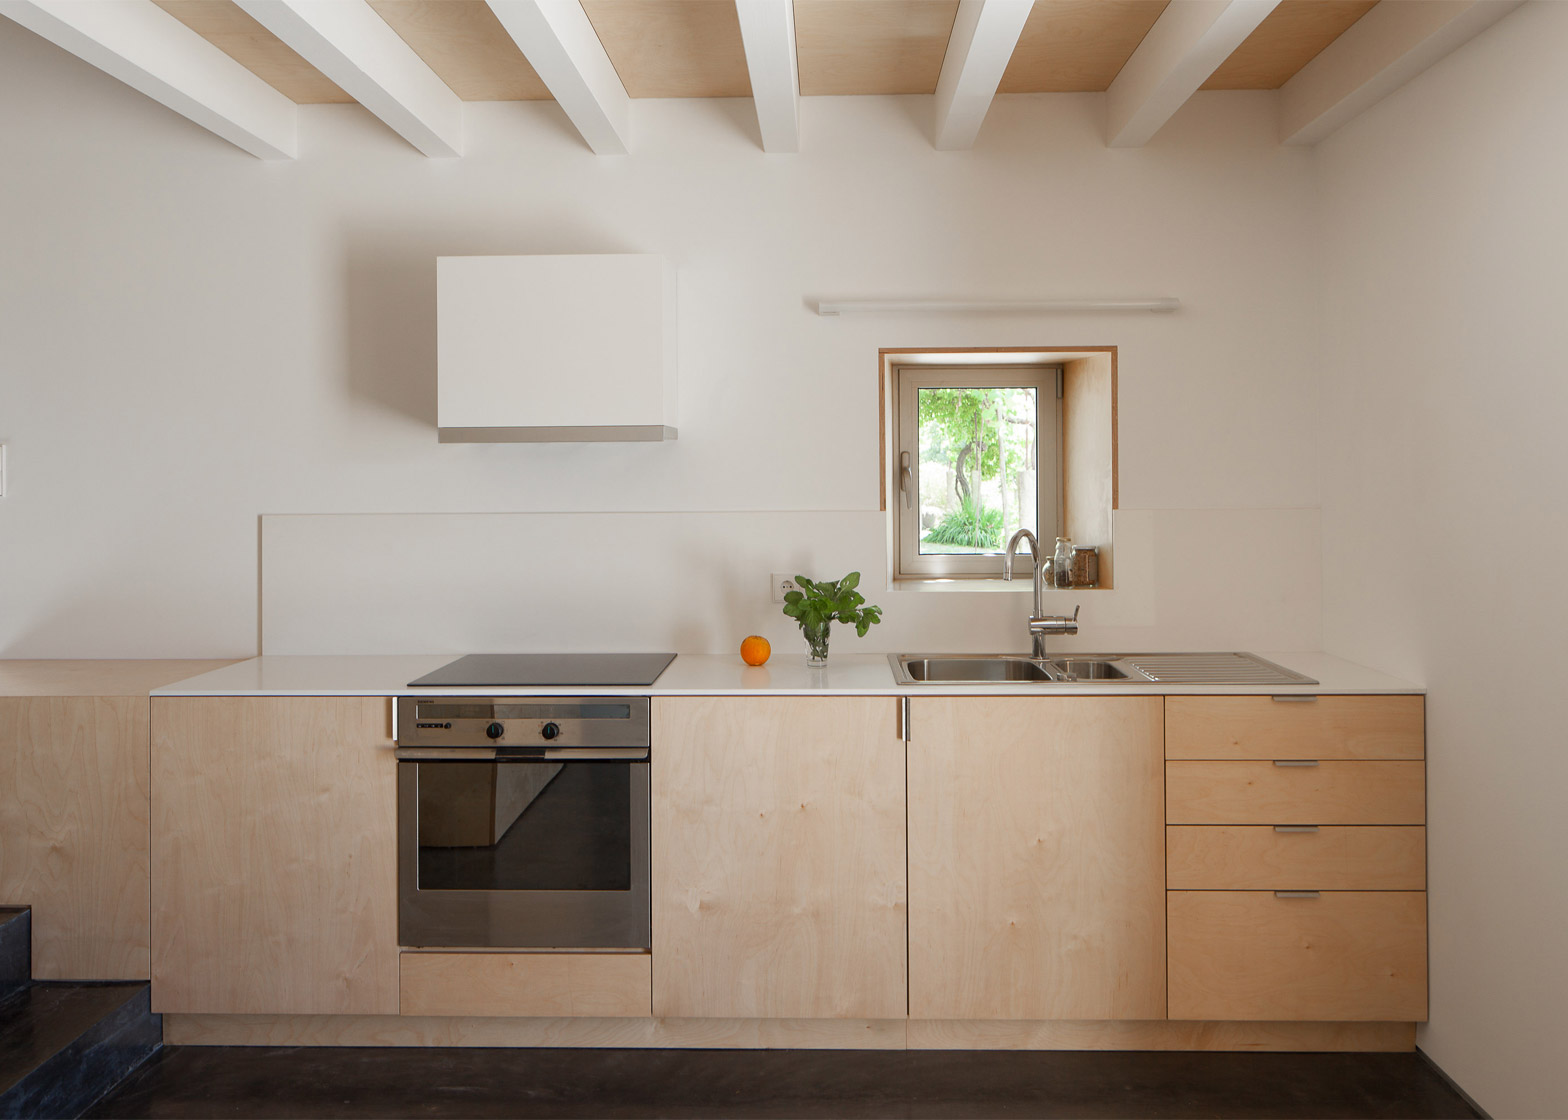 kitchen design plywood birch plywood was used to this limited budget renovation 180